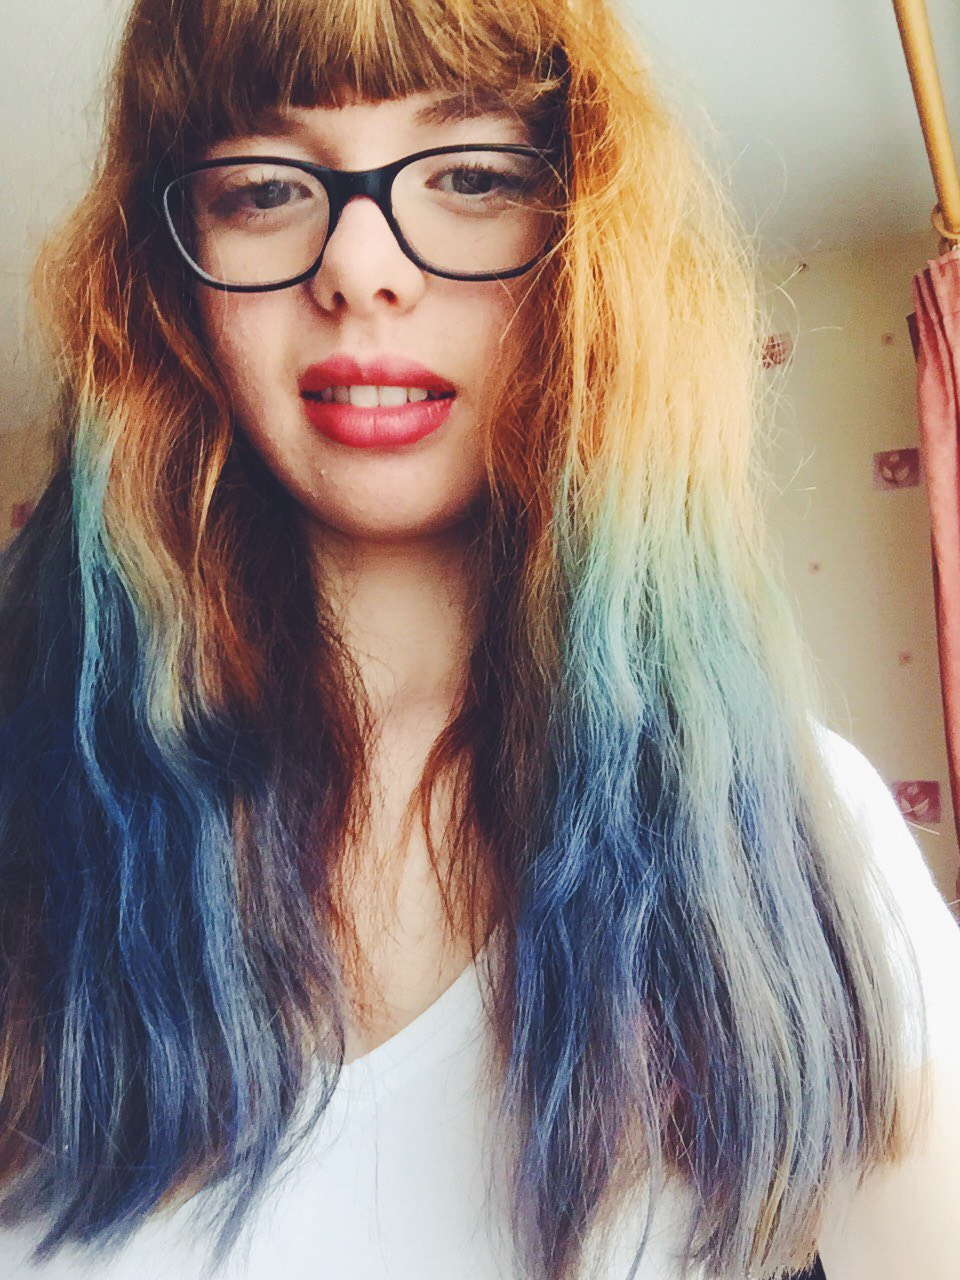 My Hair Timeline (2003-2017) dip dye chalk blue green